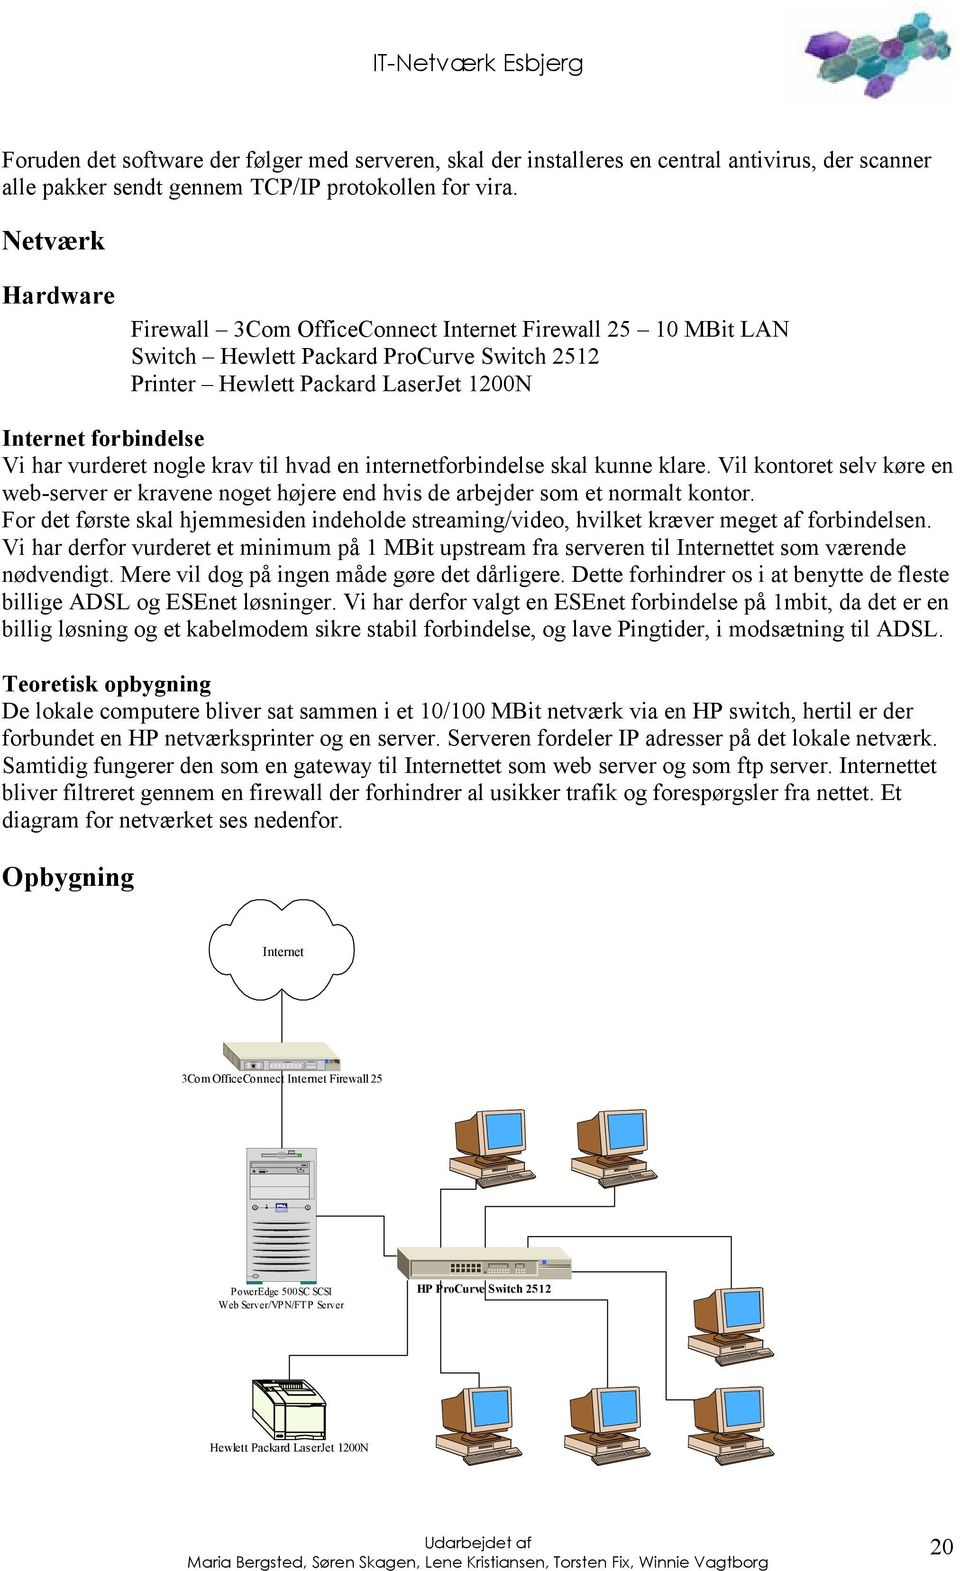 Netværk Hardware Firewall 3Com OfficeConnect Internet Firewall 25 10 MBit LAN Switch Hewlett Packard ProCurve Switch 2512 Printer Hewlett Packard LaserJet 1200N Internet forbindelse Vi har vurderet